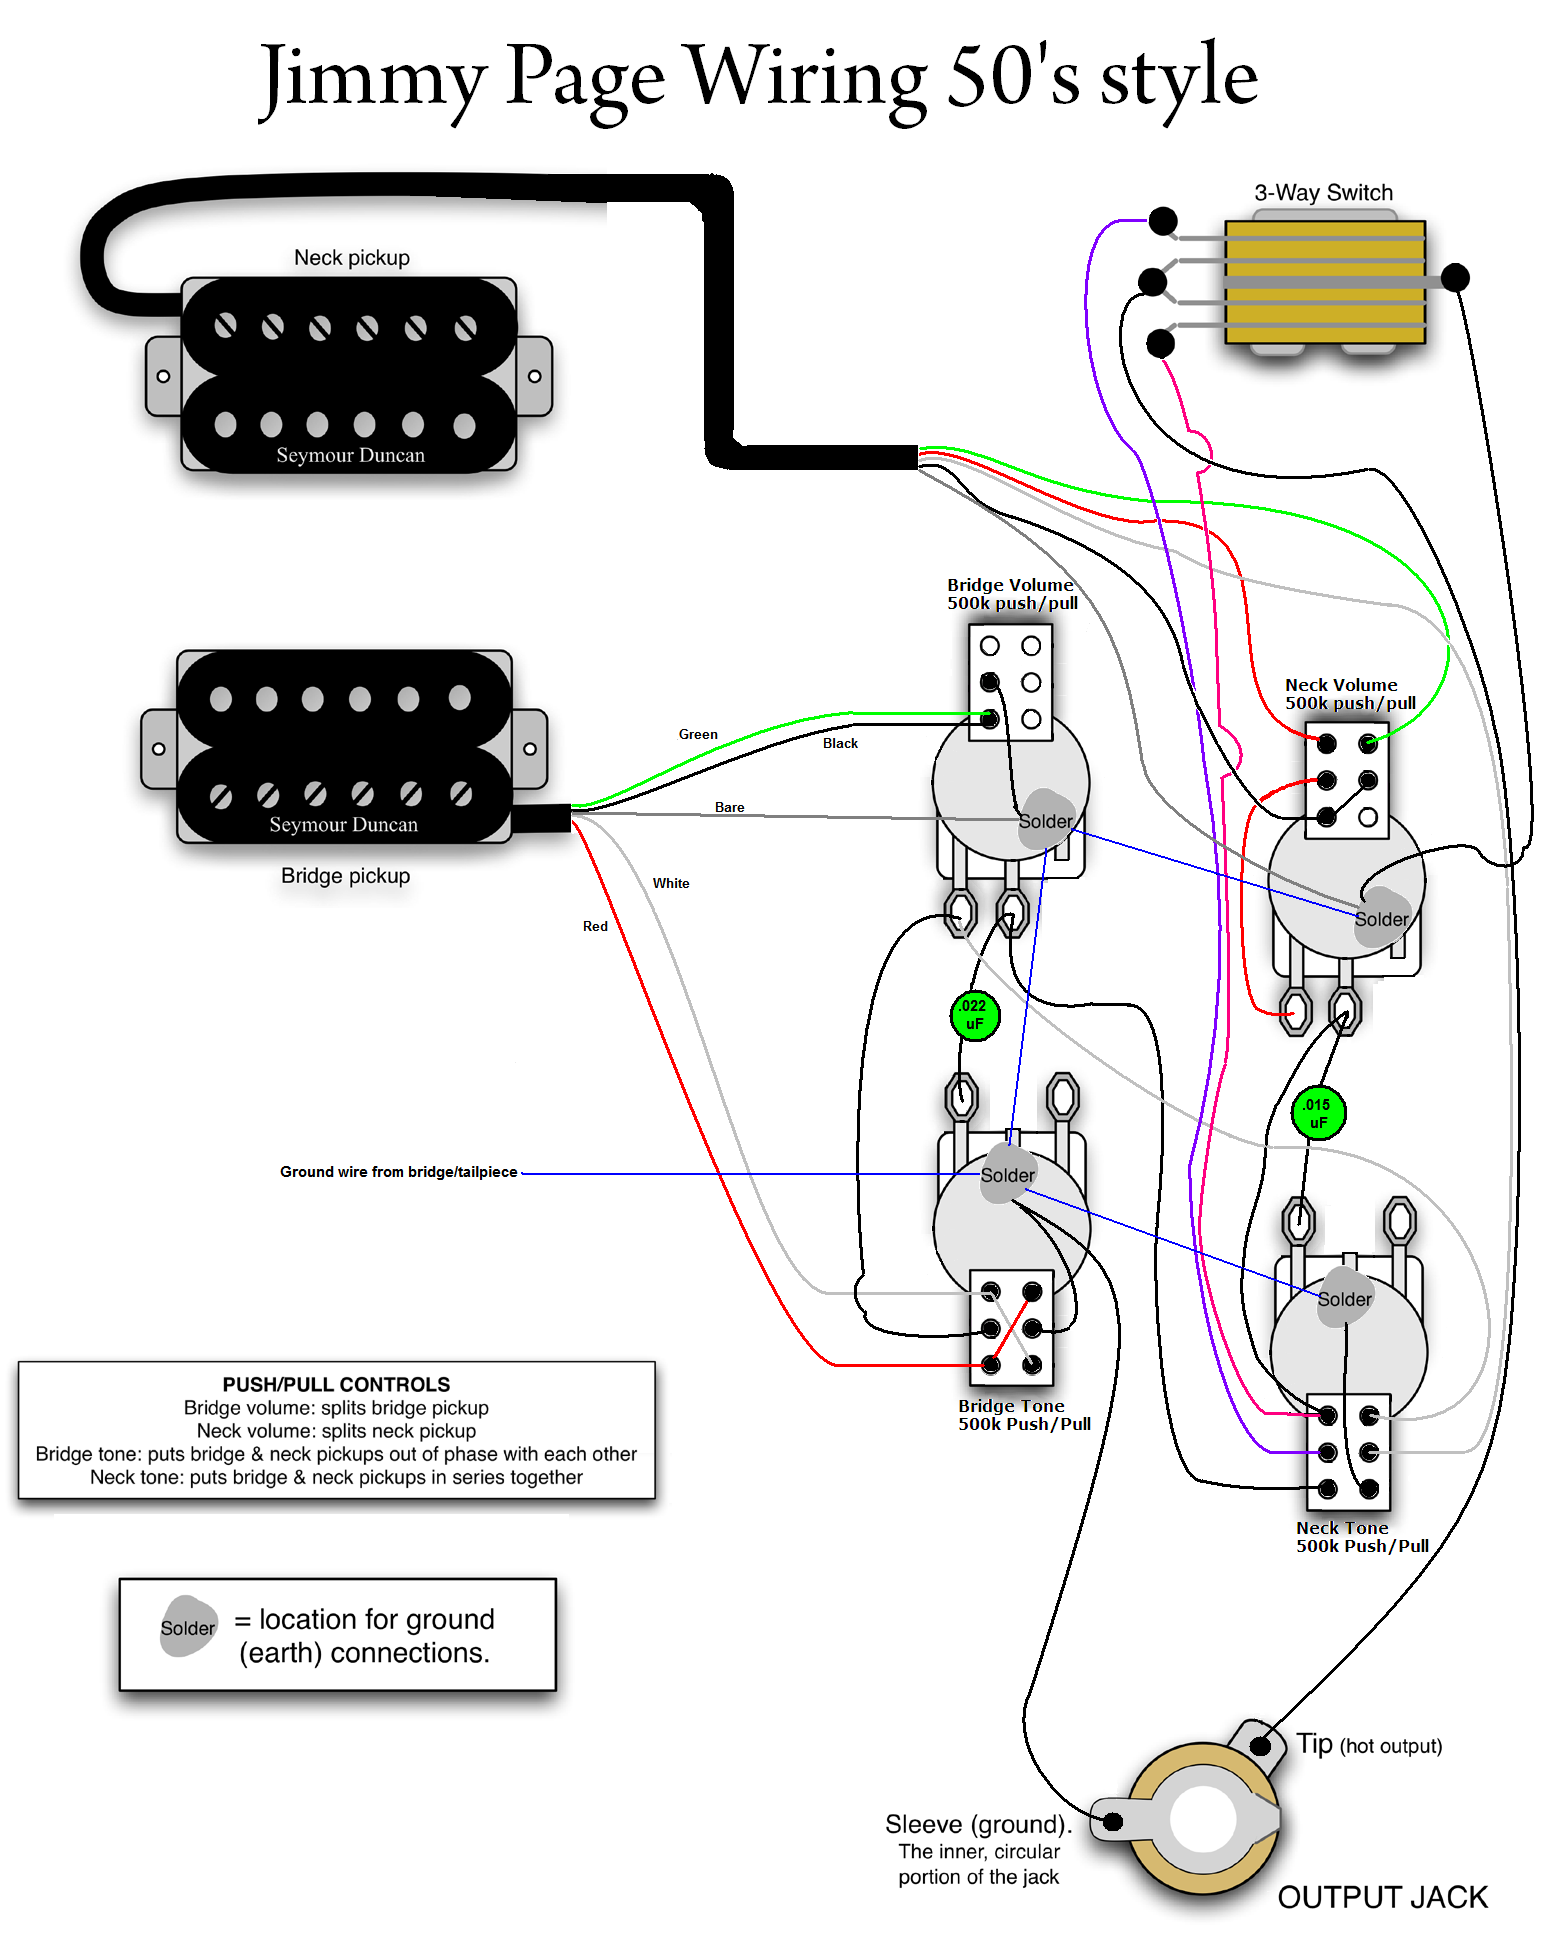 small resolution of jimmy page wiring diagram coil split simple wiring schema gibson les paul wiring schematic push pull coil tap wiring diagram jimmy page